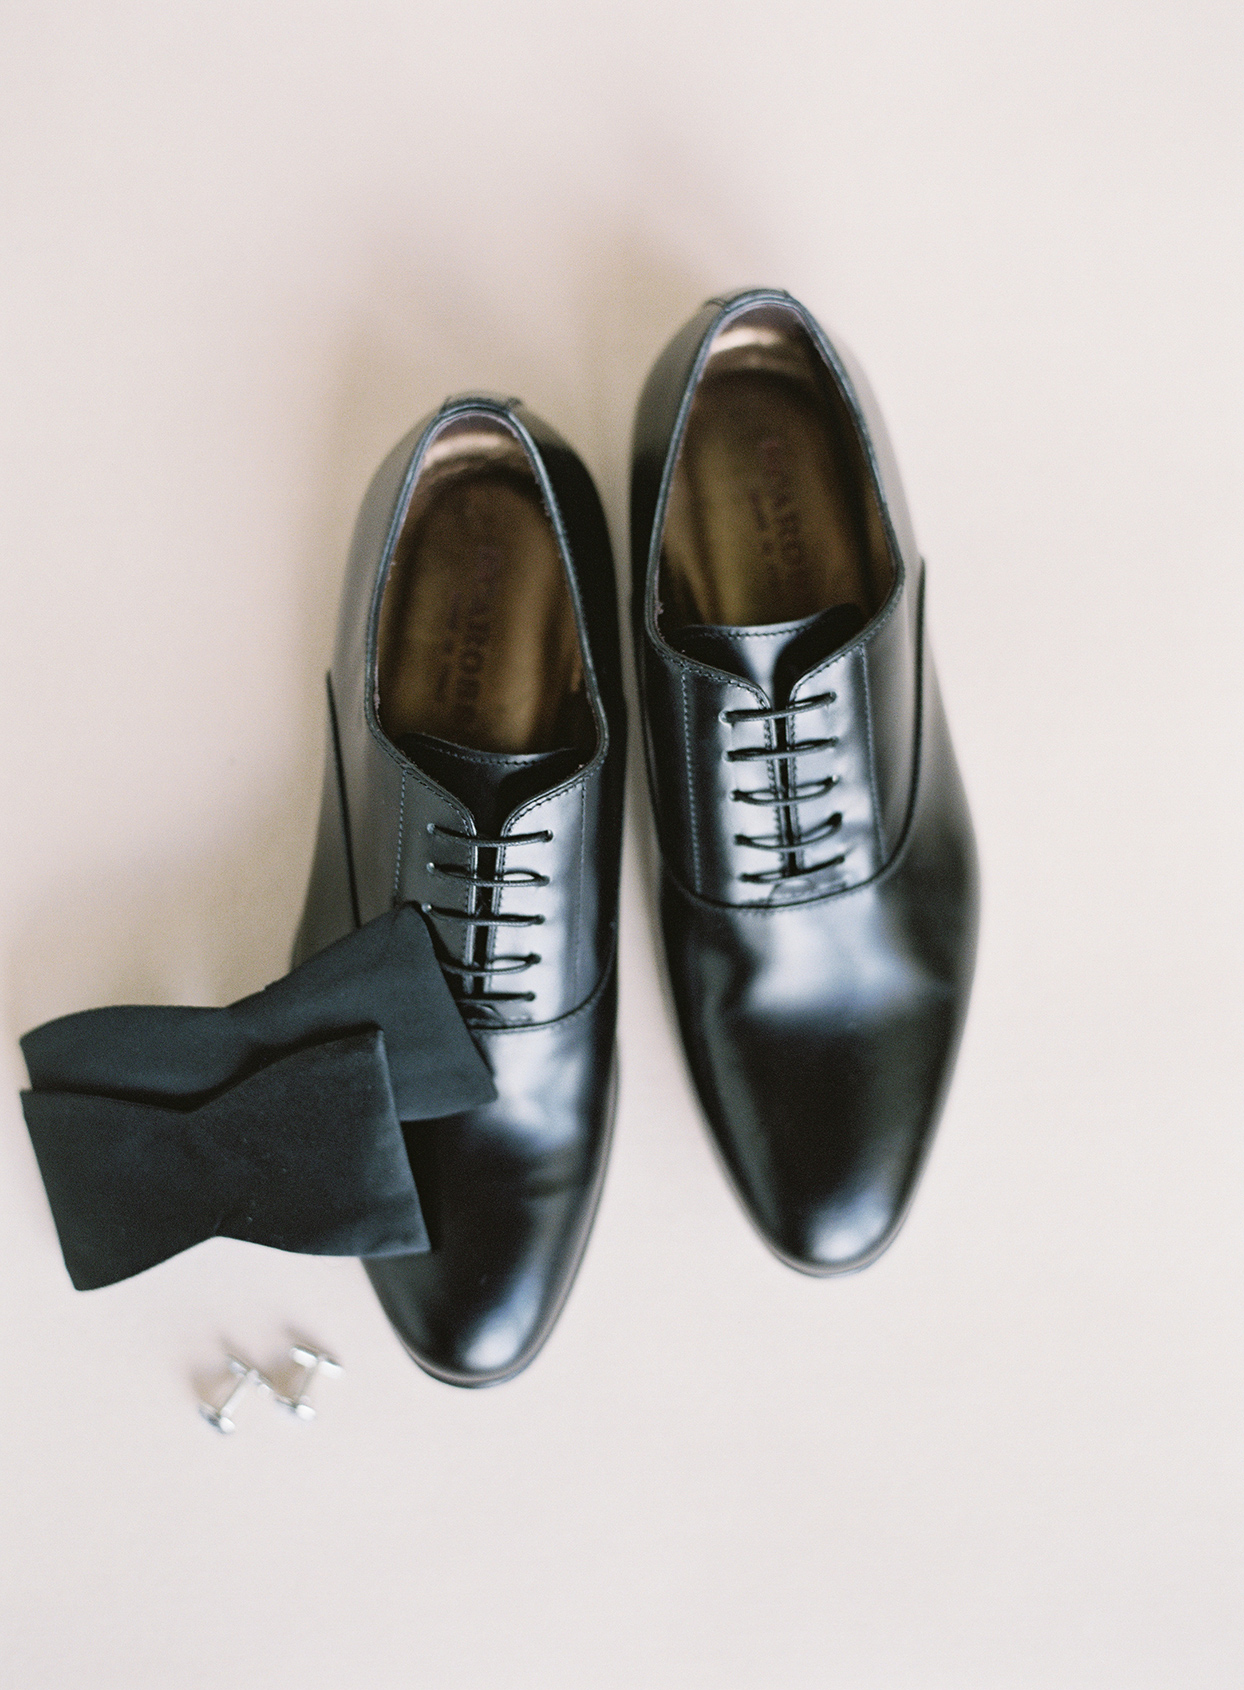 jen alan wedding groom black shoes and accessories